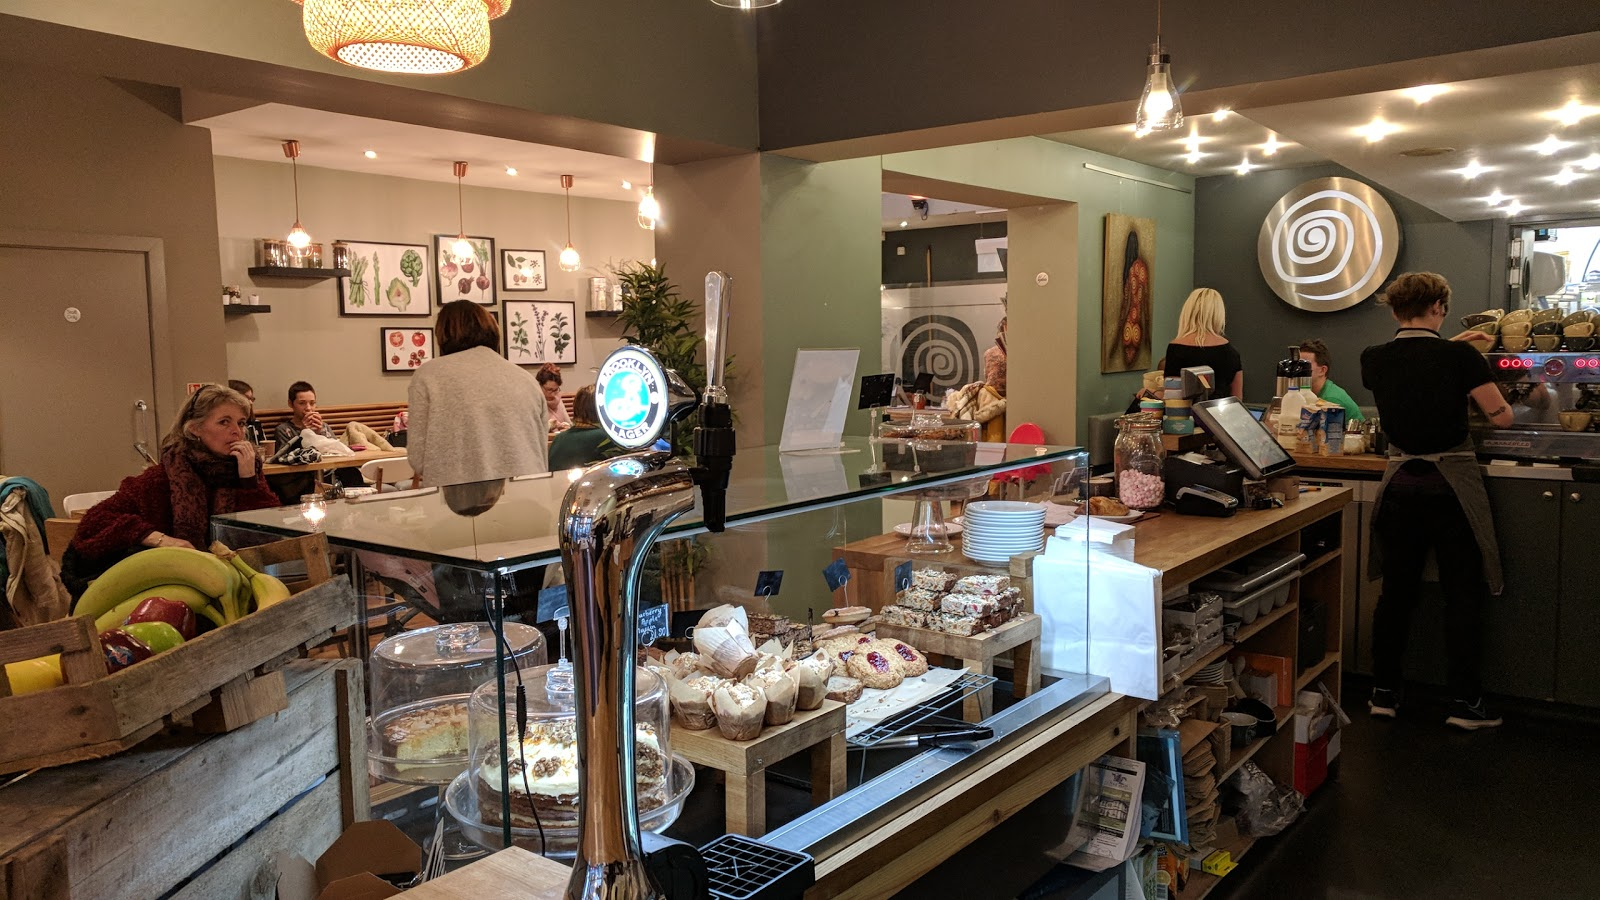 Moksha Caffe: A Work-Friendly Place in Brighton